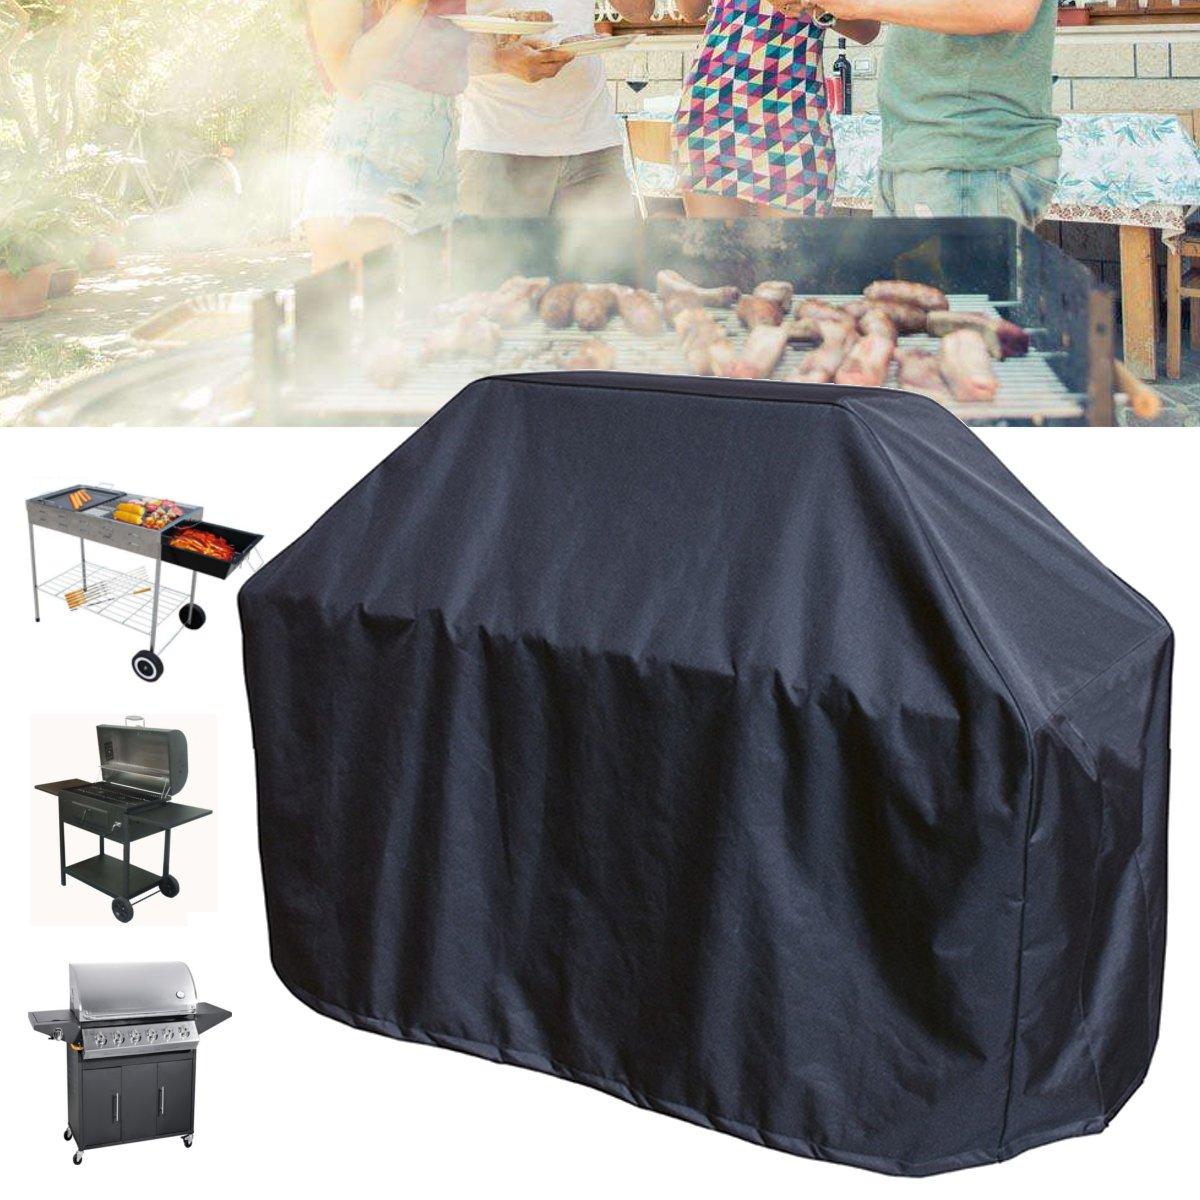 163x61x122cm Black BBQ Grill Barbecue Waterproof Covers